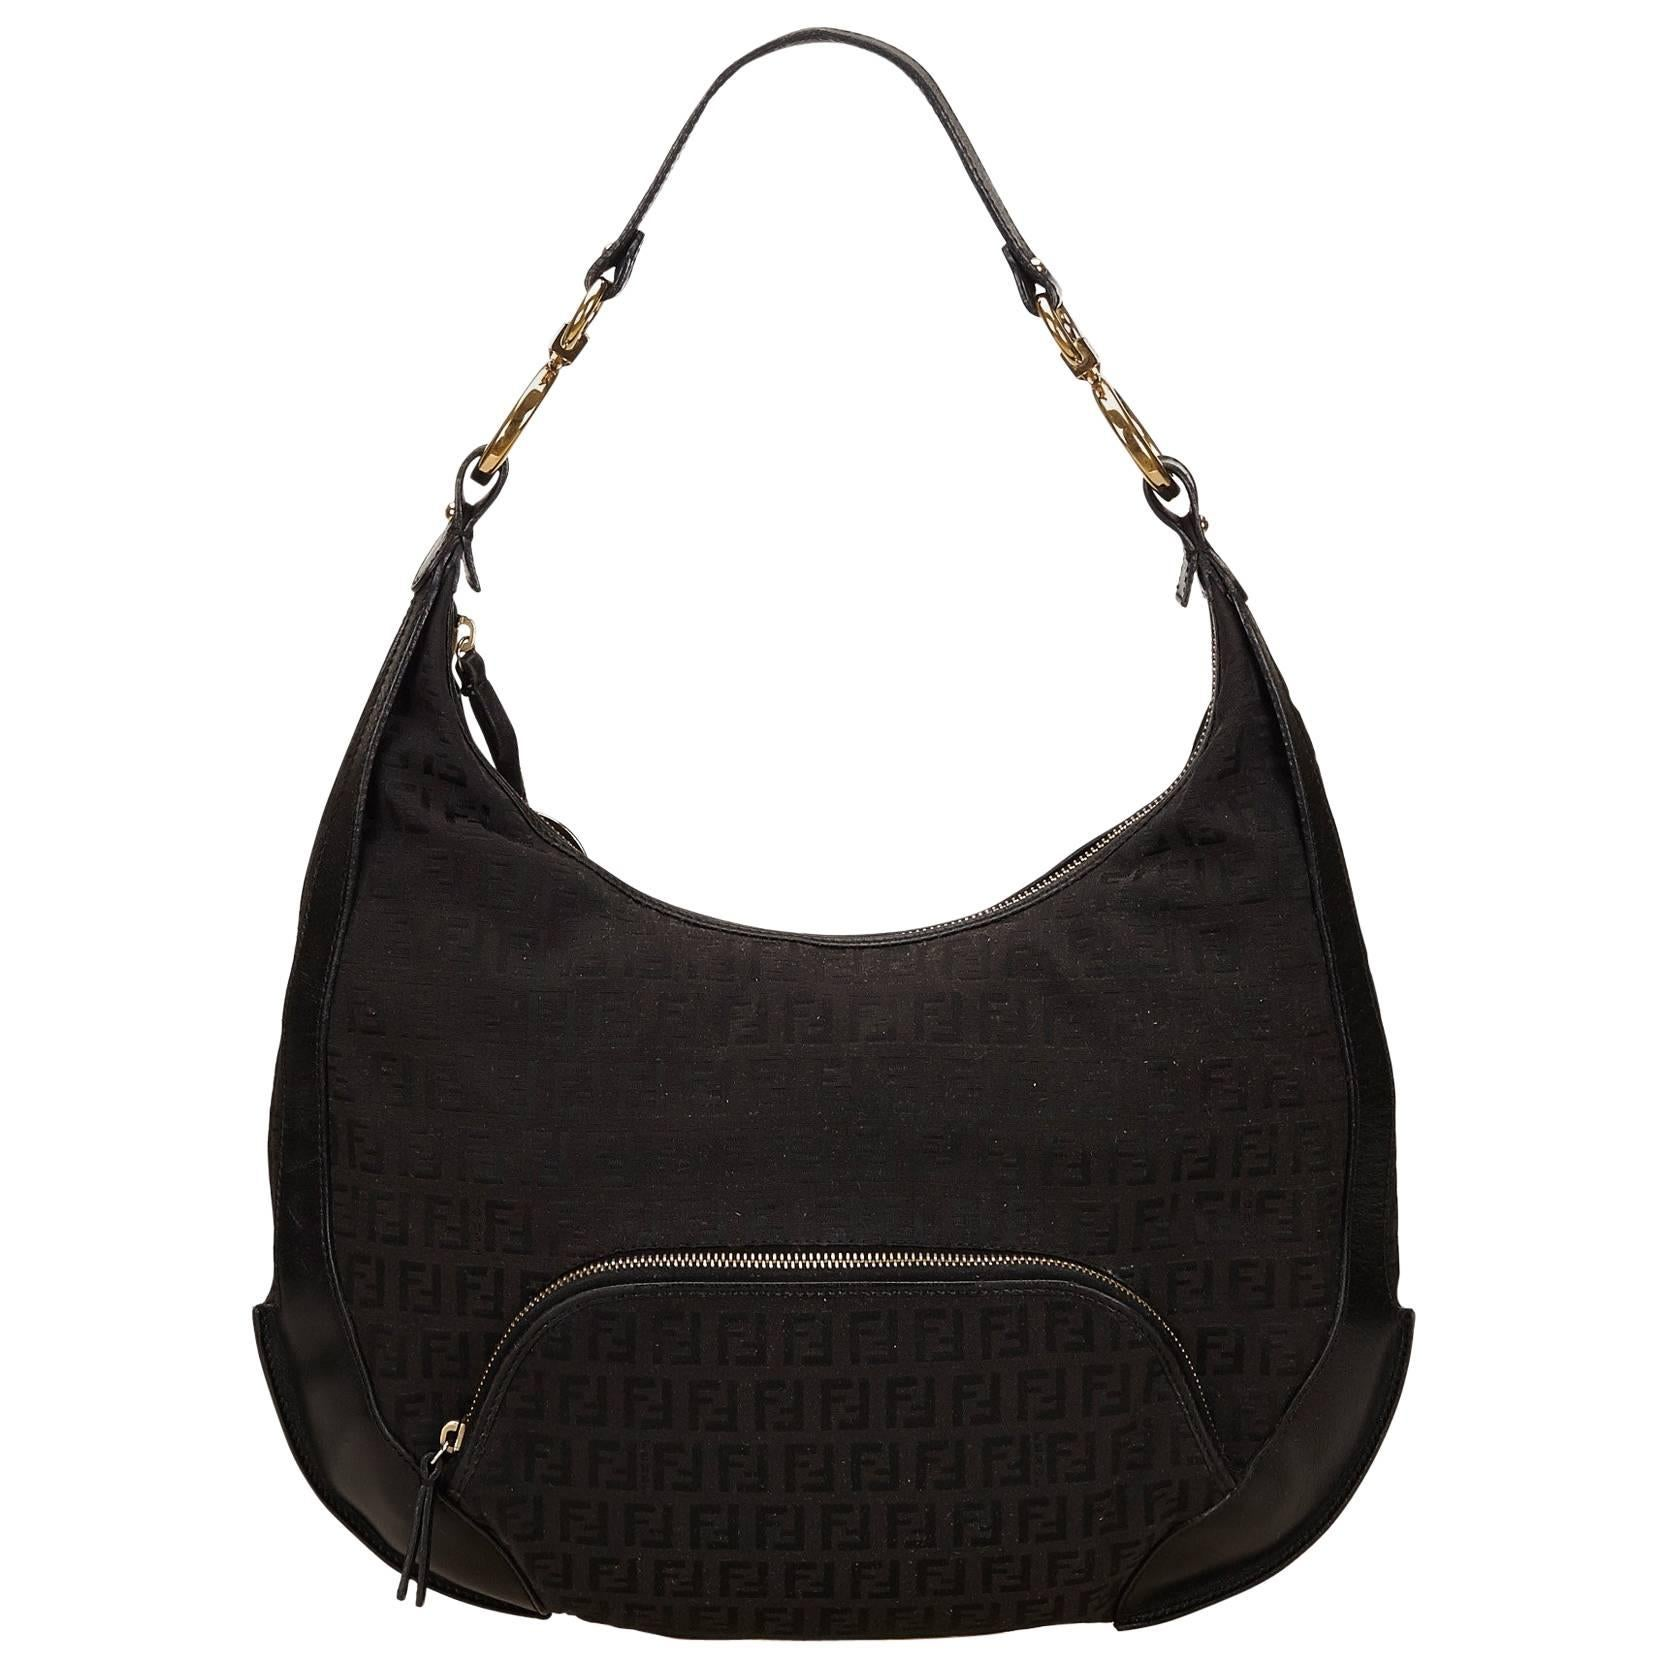 639f2bc2b21 ... czech fendi black zucchino jacquard shoulder bag for sale 5128b 1d0b8  ...